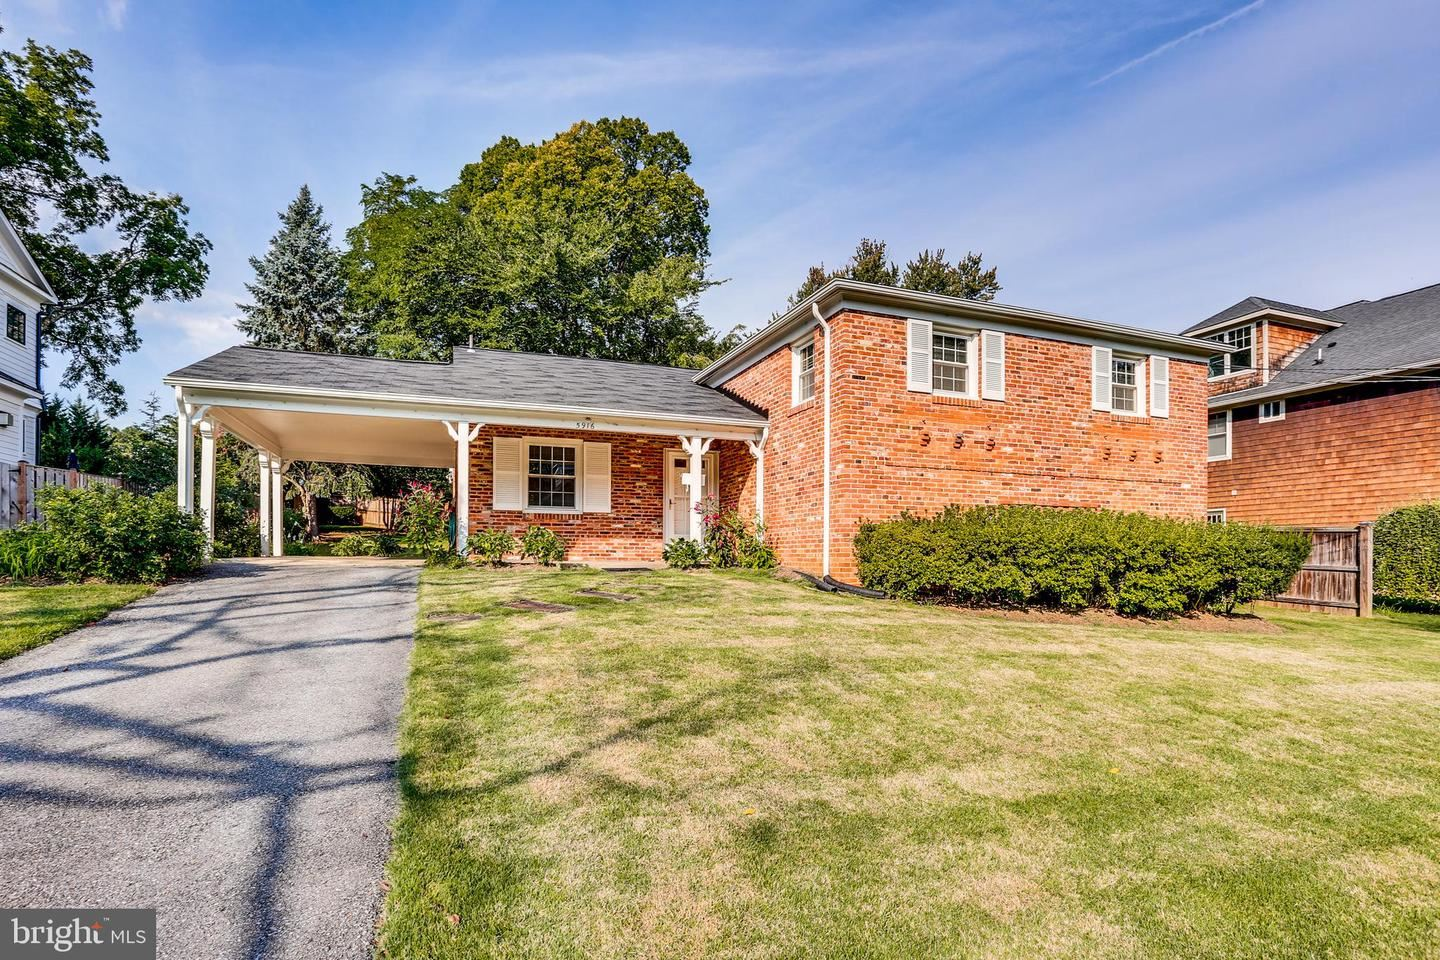 Photo for 5916 KIRBY RD, BETHESDA, MD 20817 (MLS # MDMC688668)